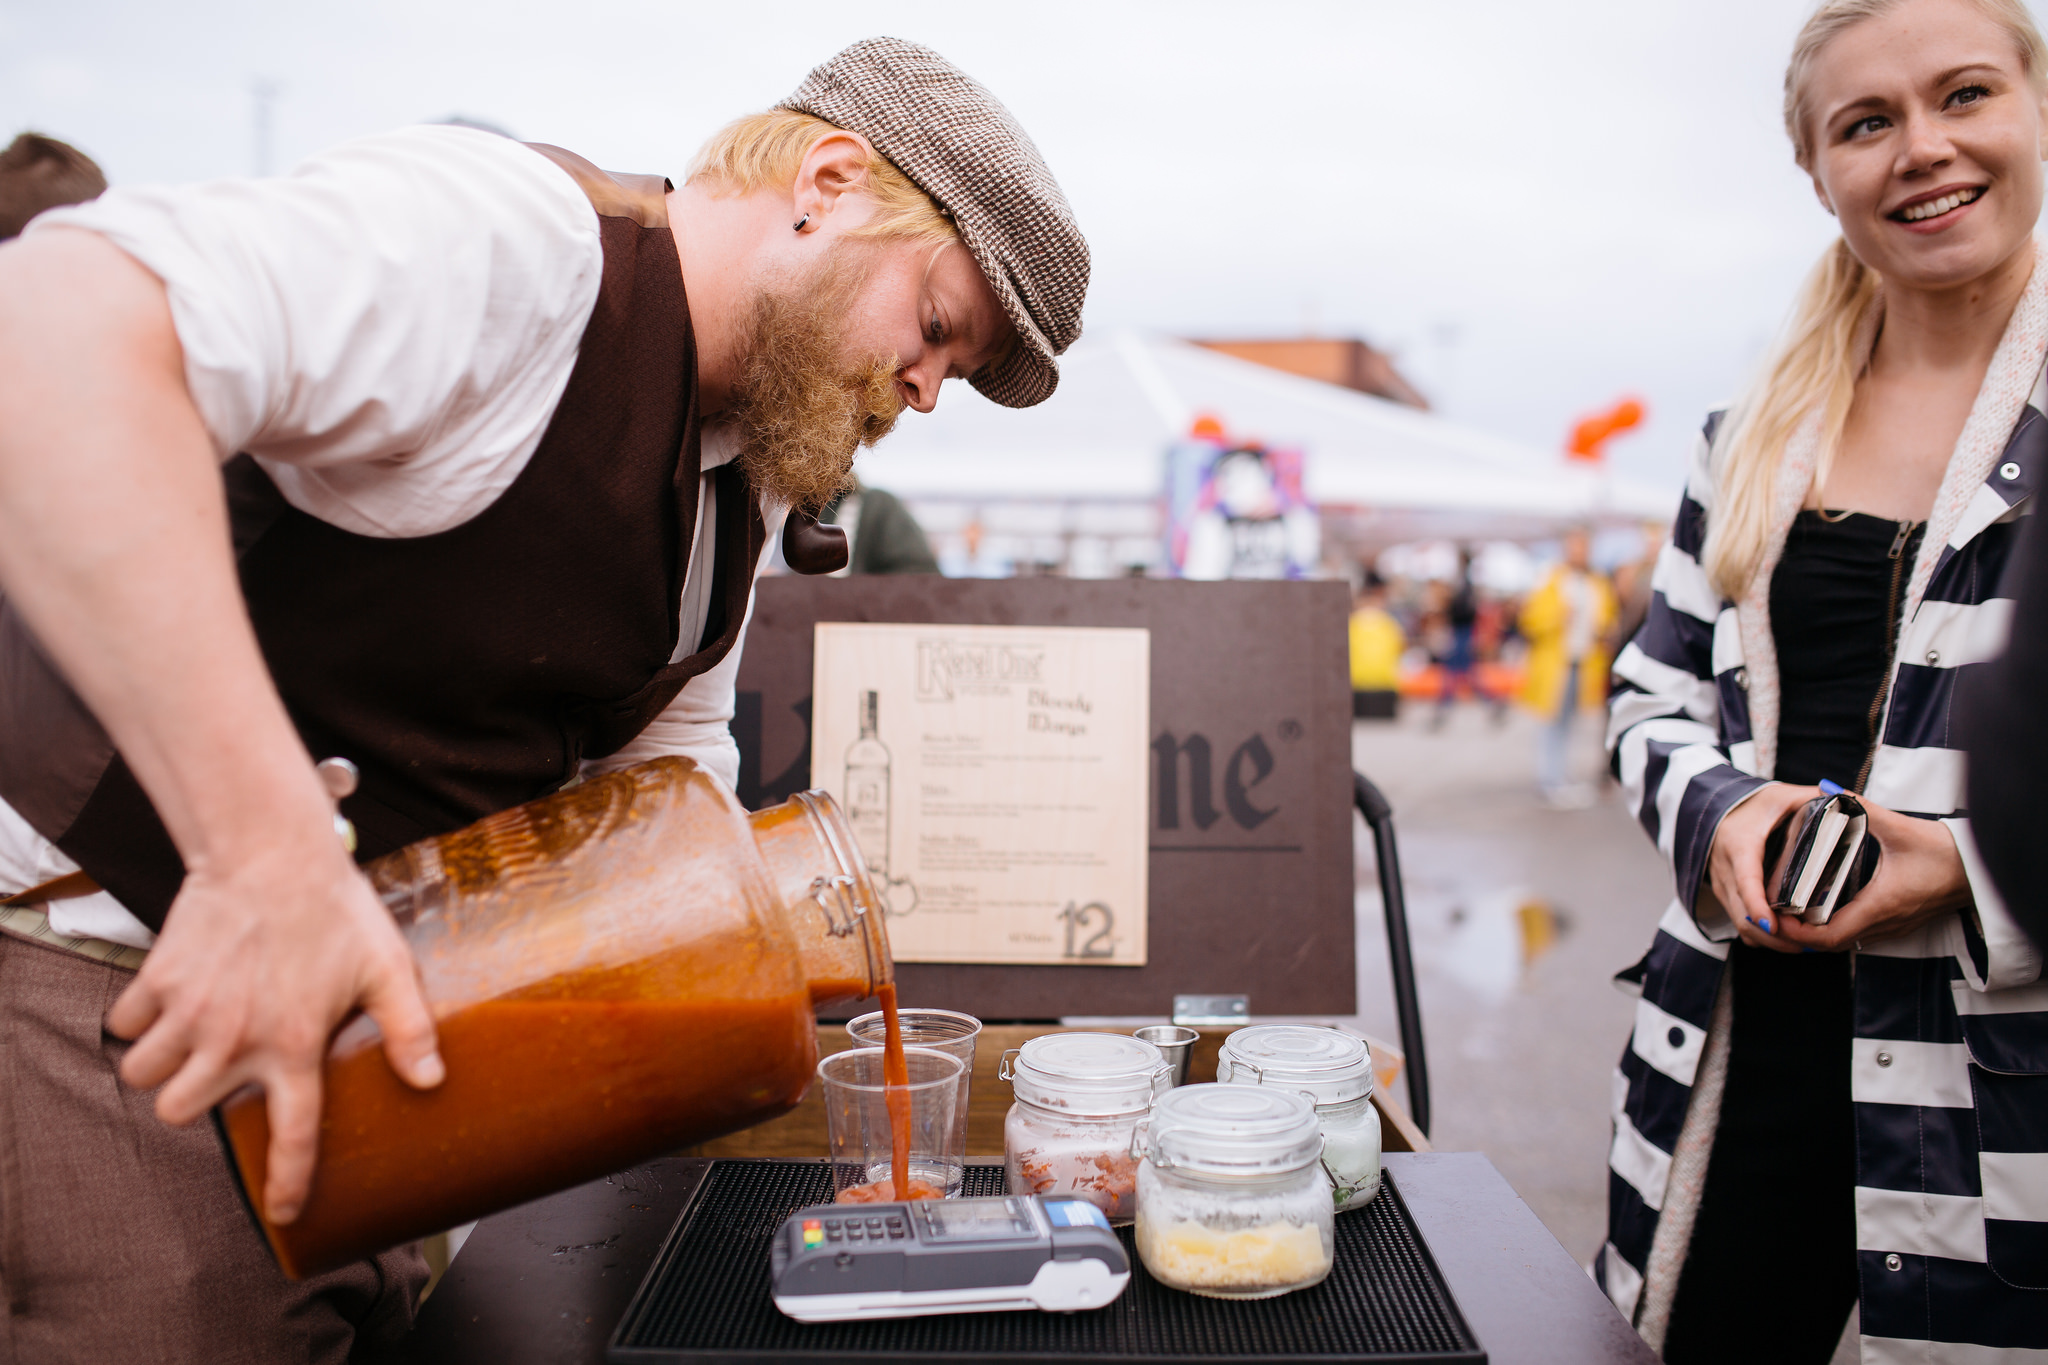 Man pouring artisanal beverage at Flow Festival